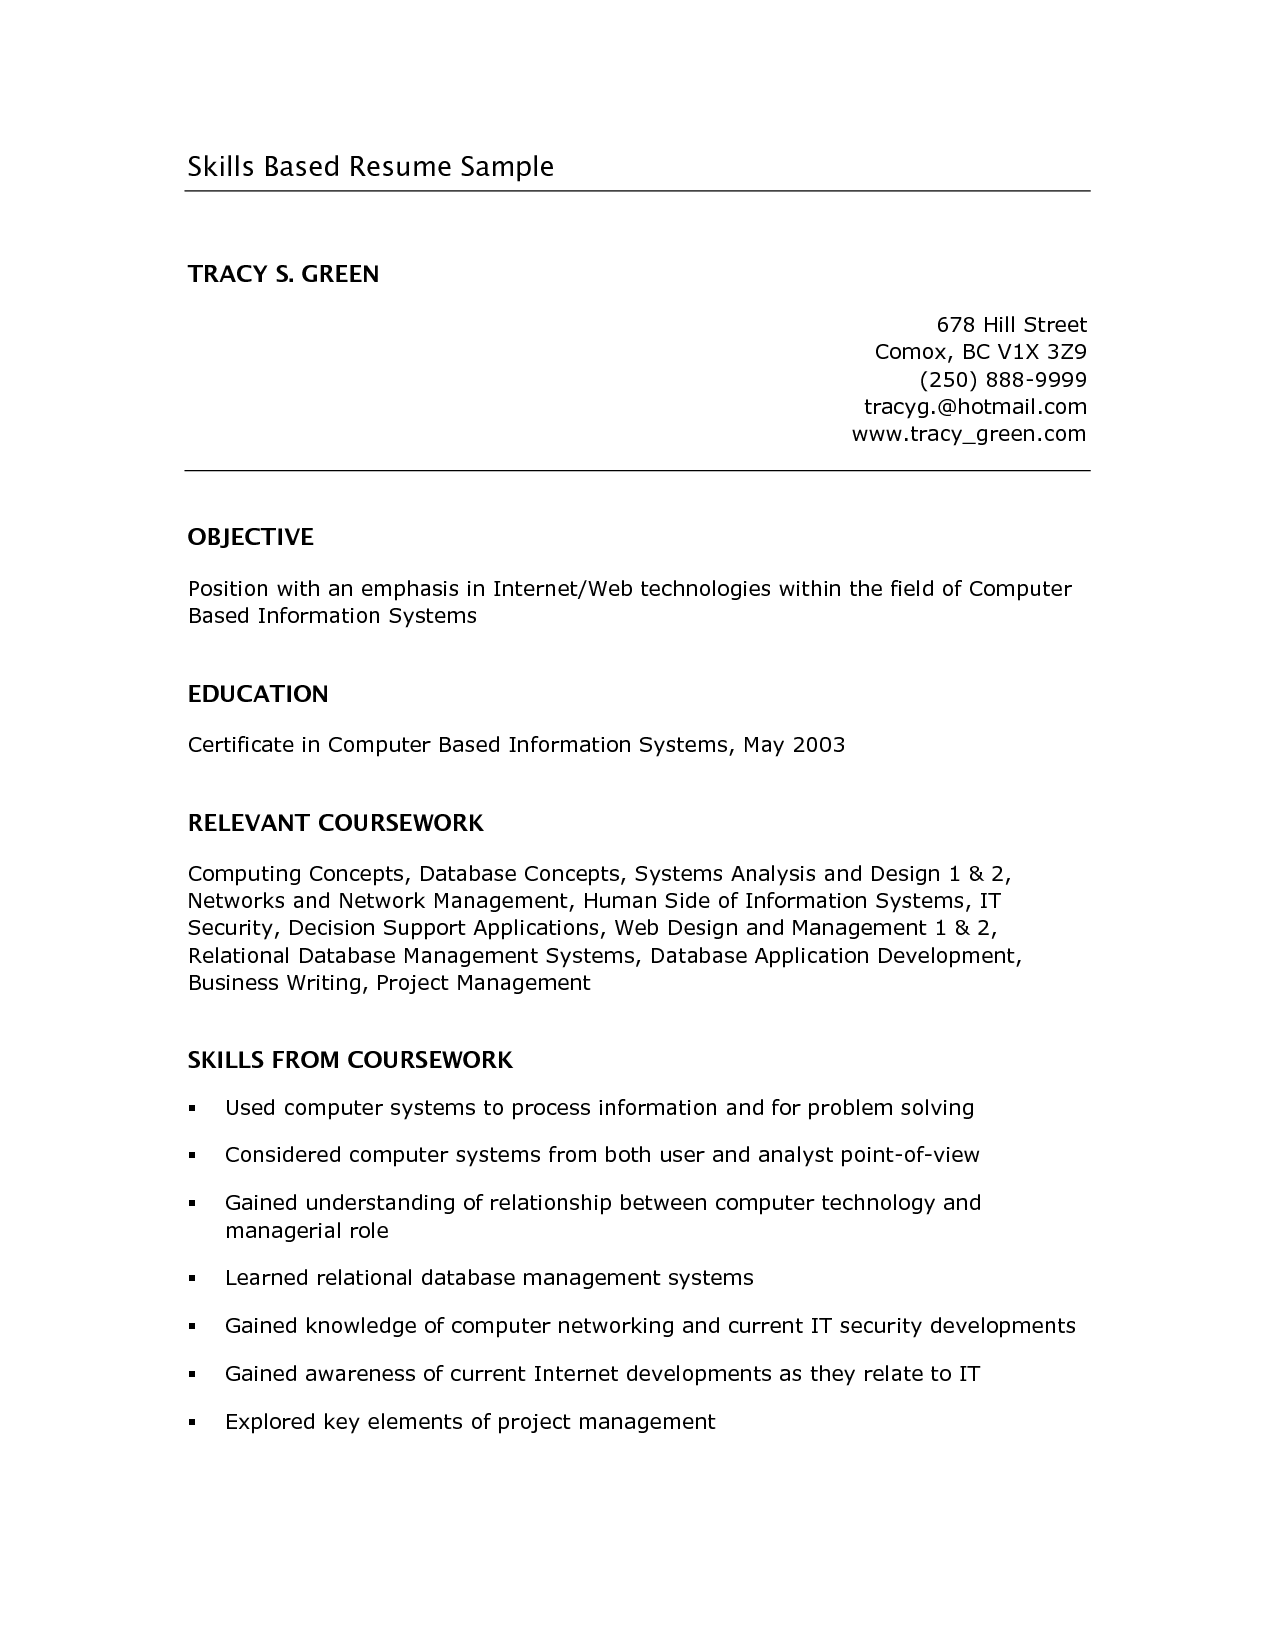 Skills Based Resume Example Google Search School Business